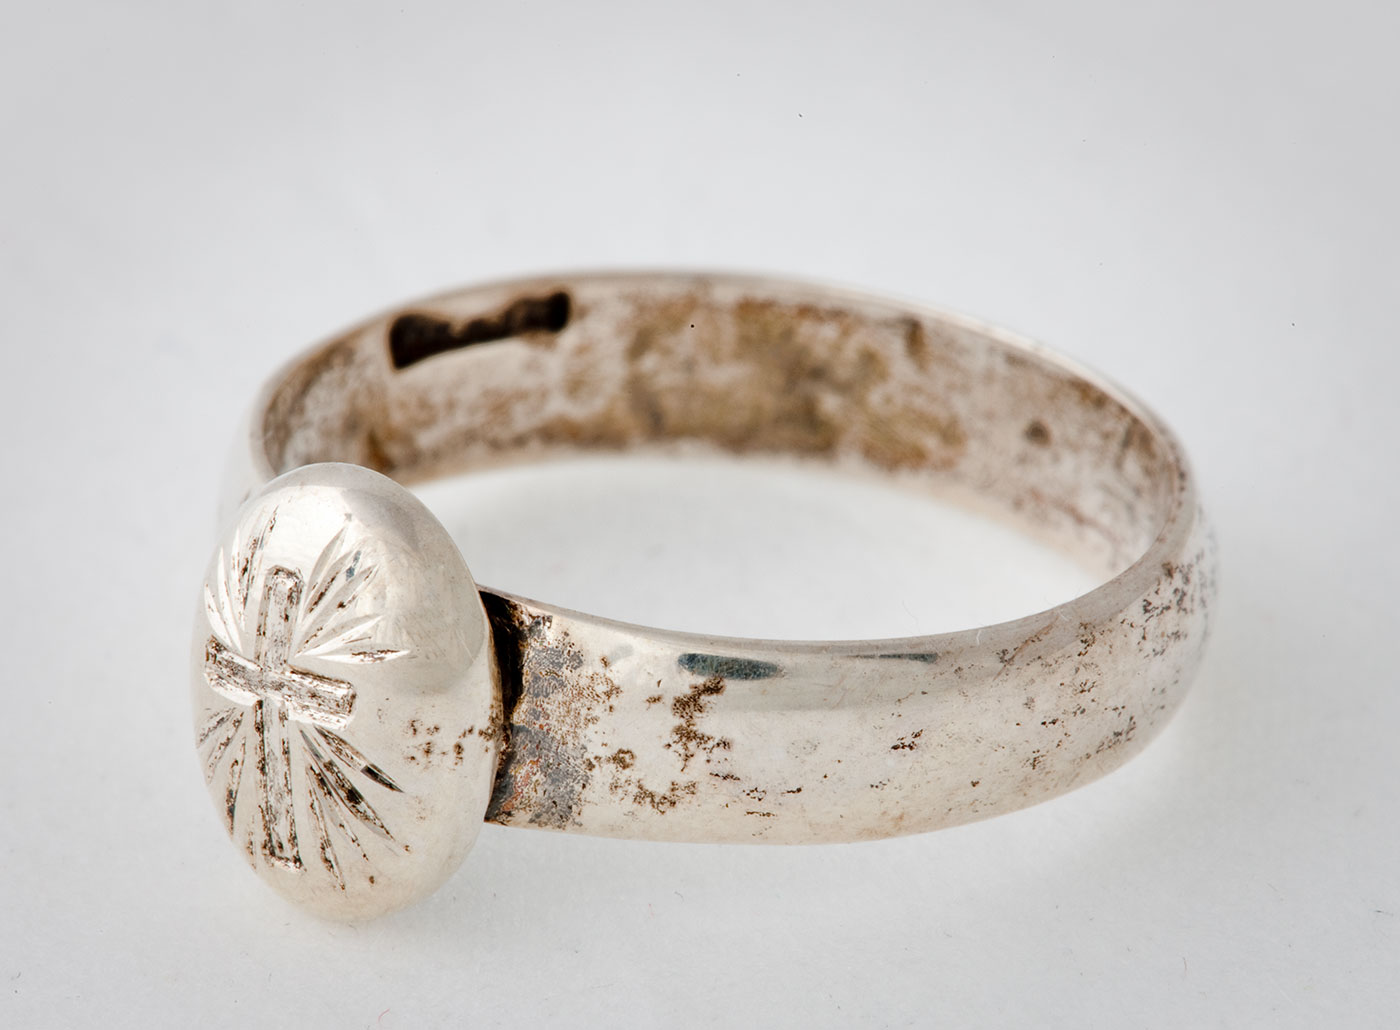 Silver ring with cross inscription. - click to view larger image